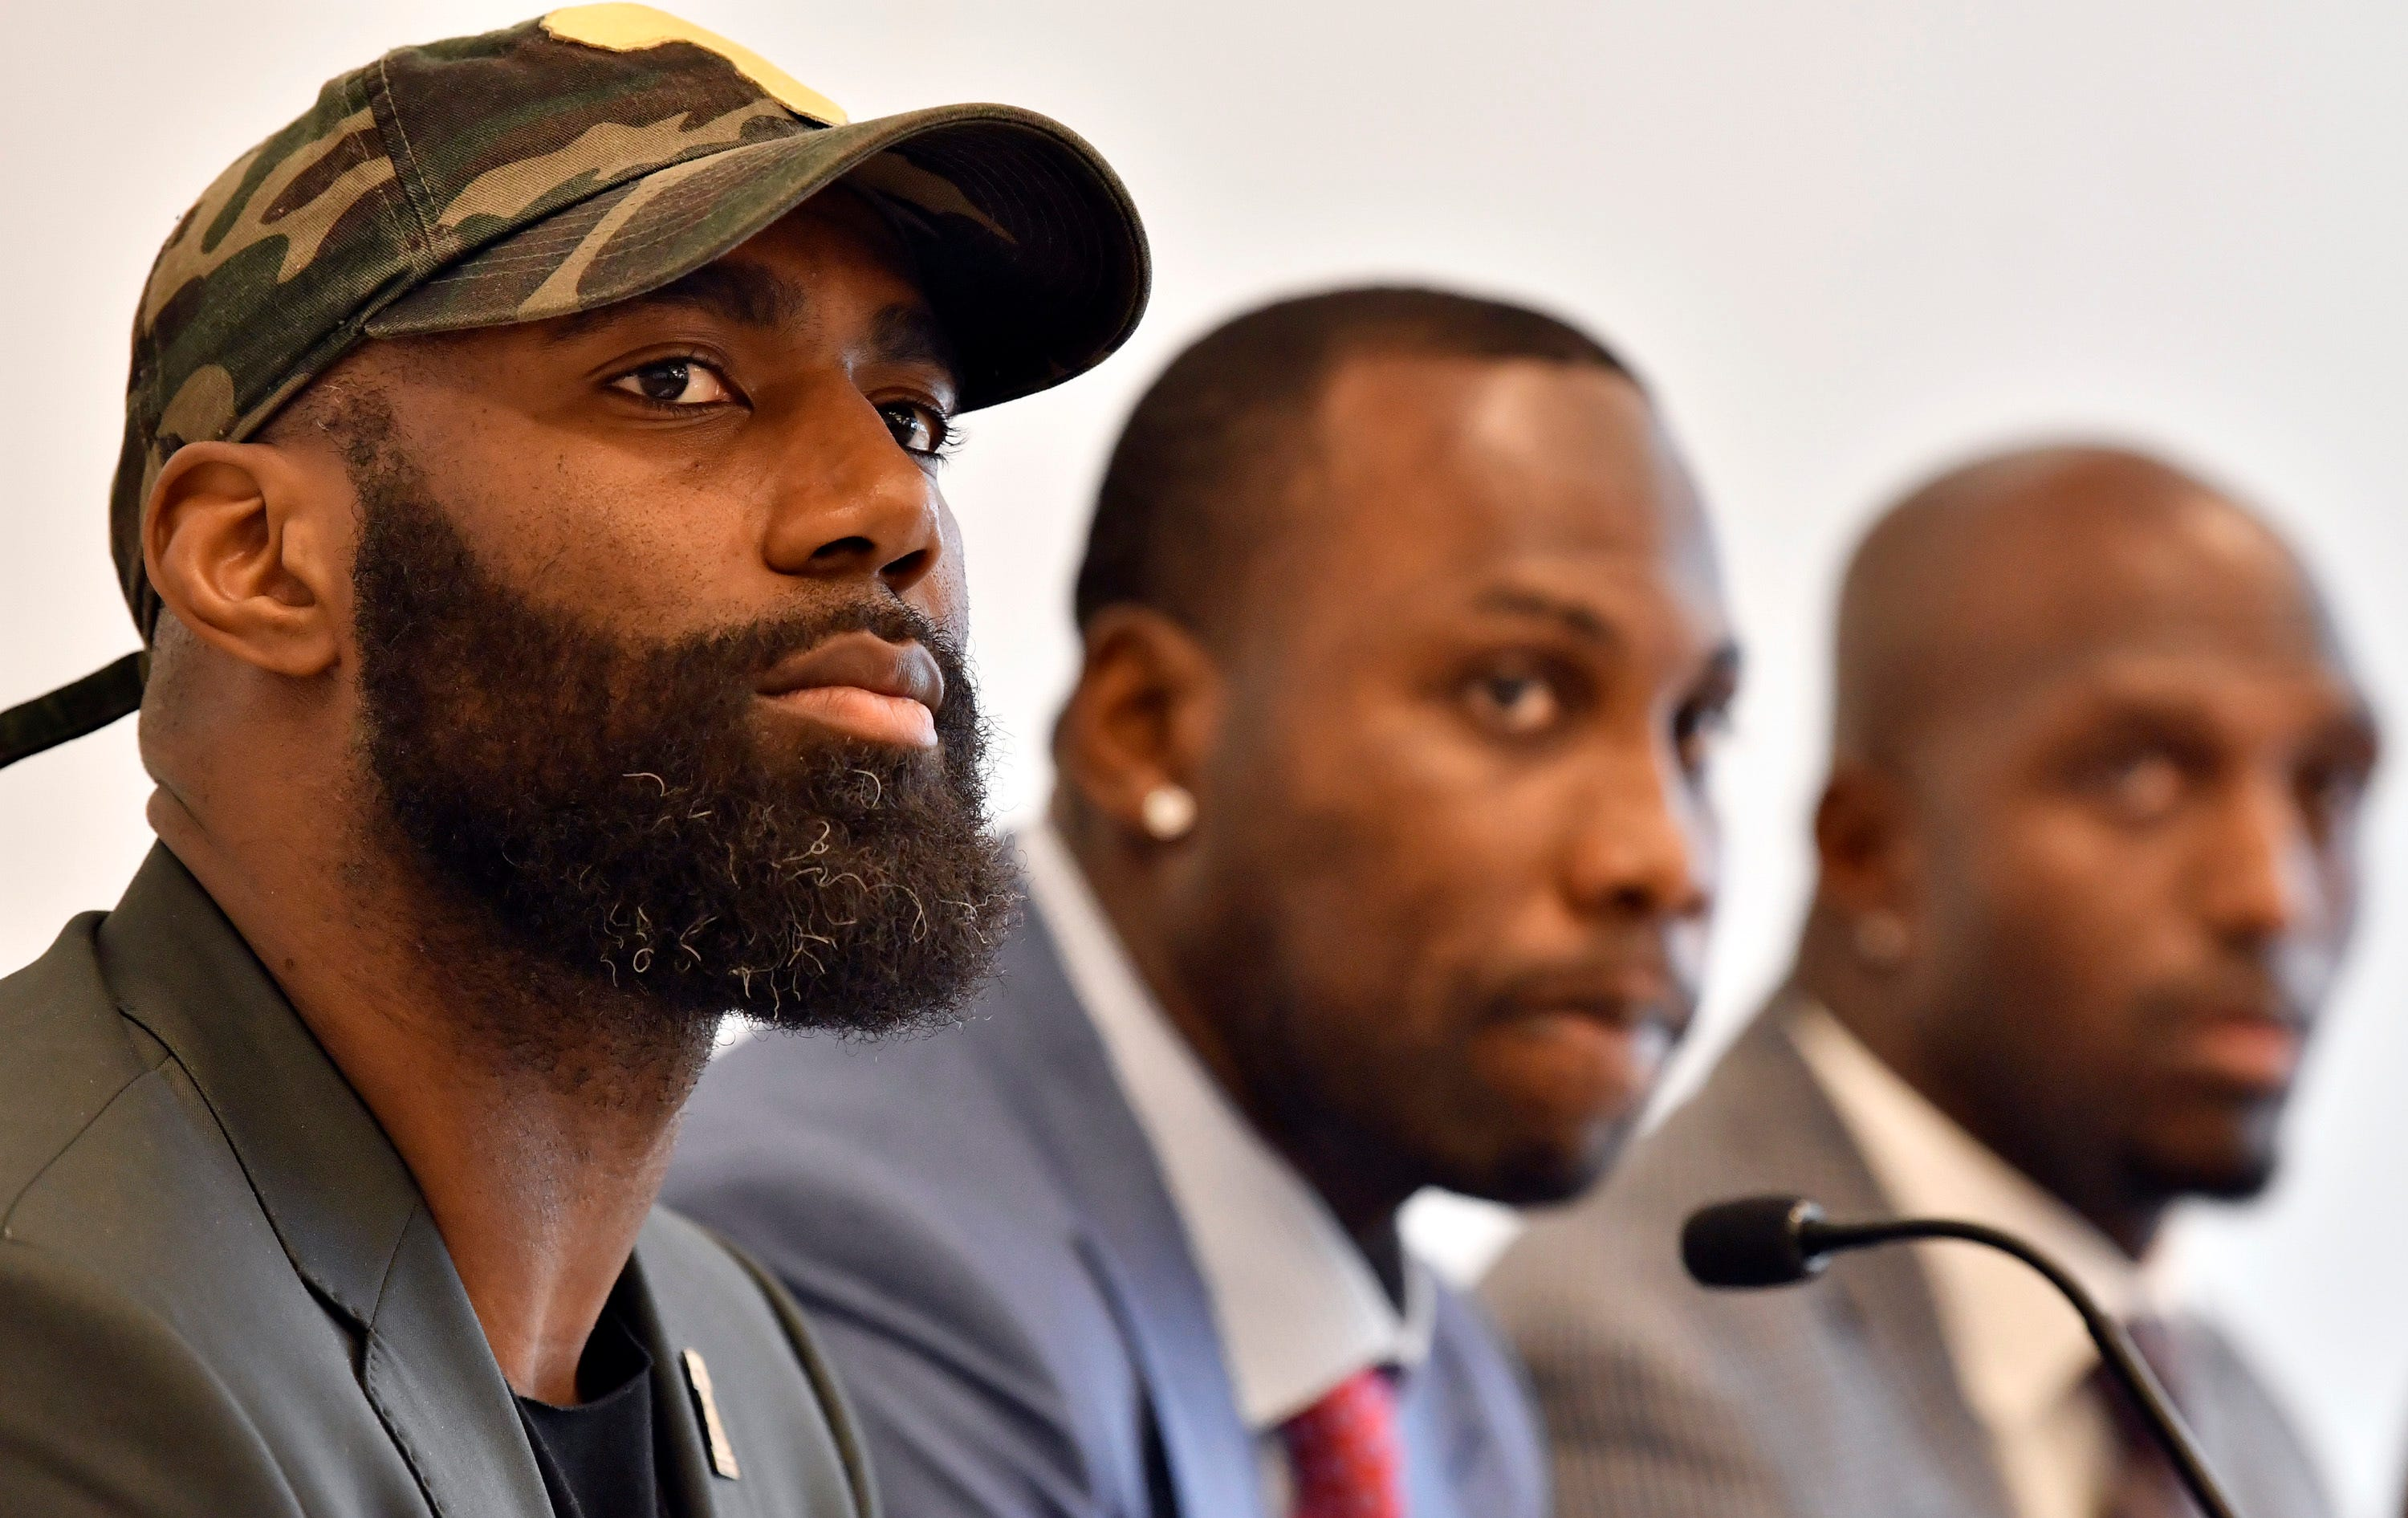 This is how NFL players are responding to President Trump's rhetoric